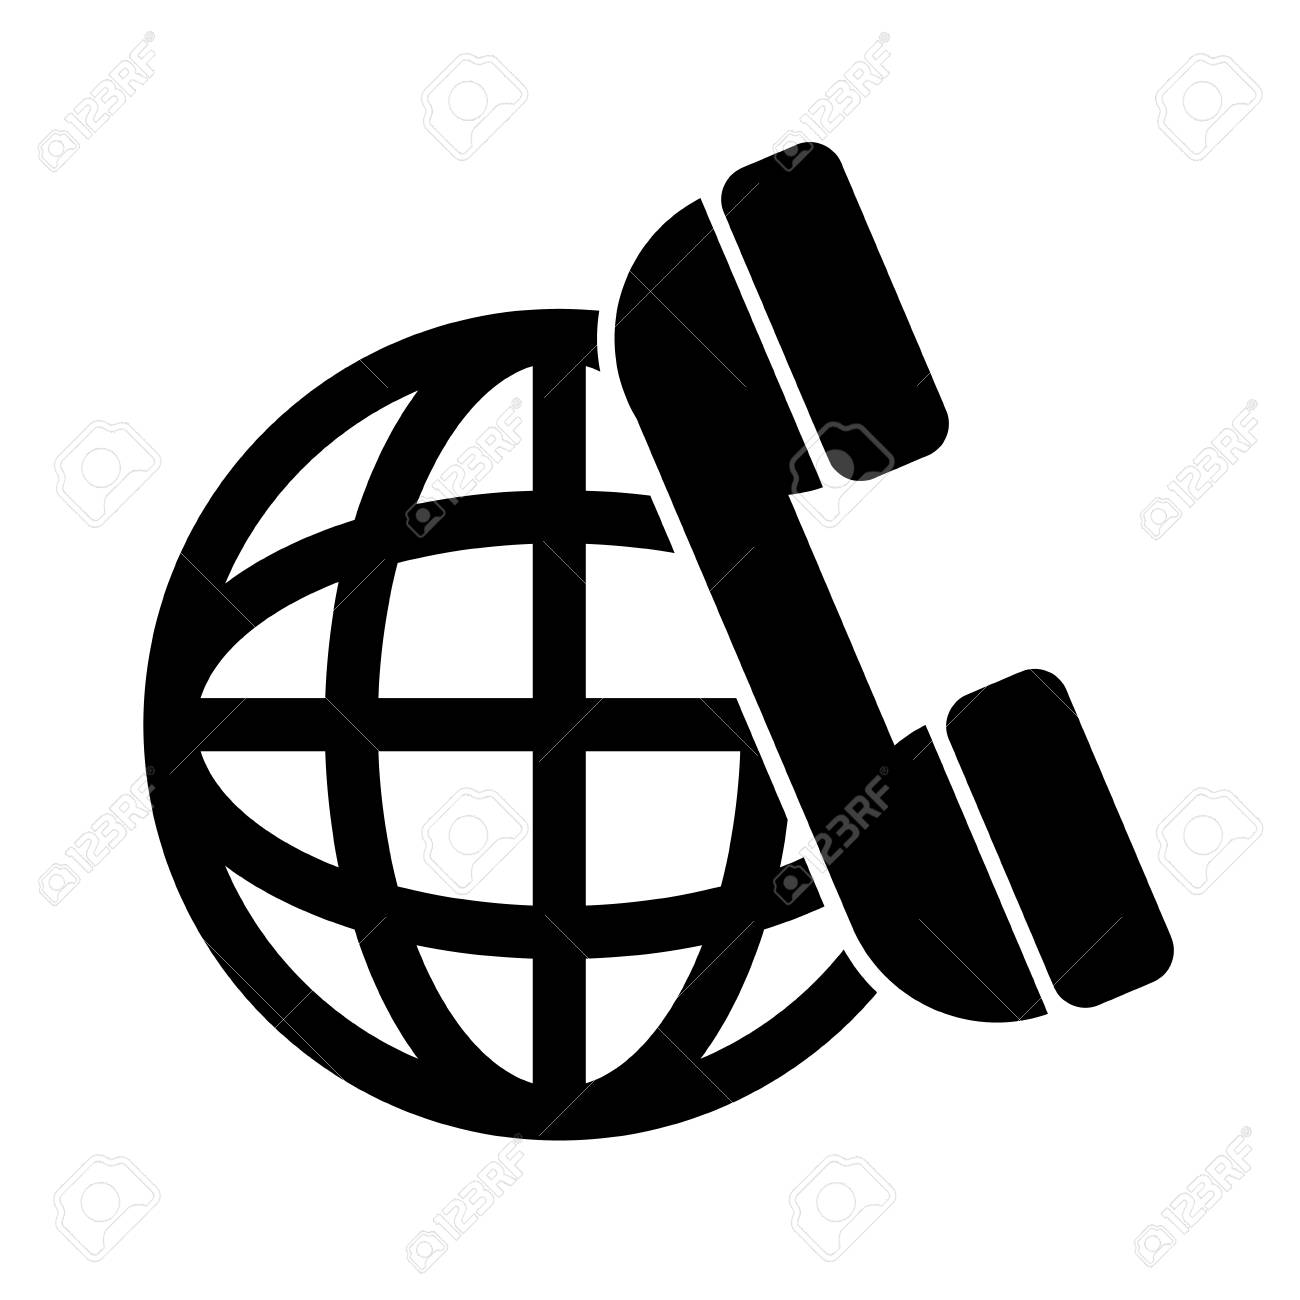 Sphere Global Network Connection And Telephone Headset Icon Royalty Free Cliparts Vectors And Stock Illustration Image 63023261